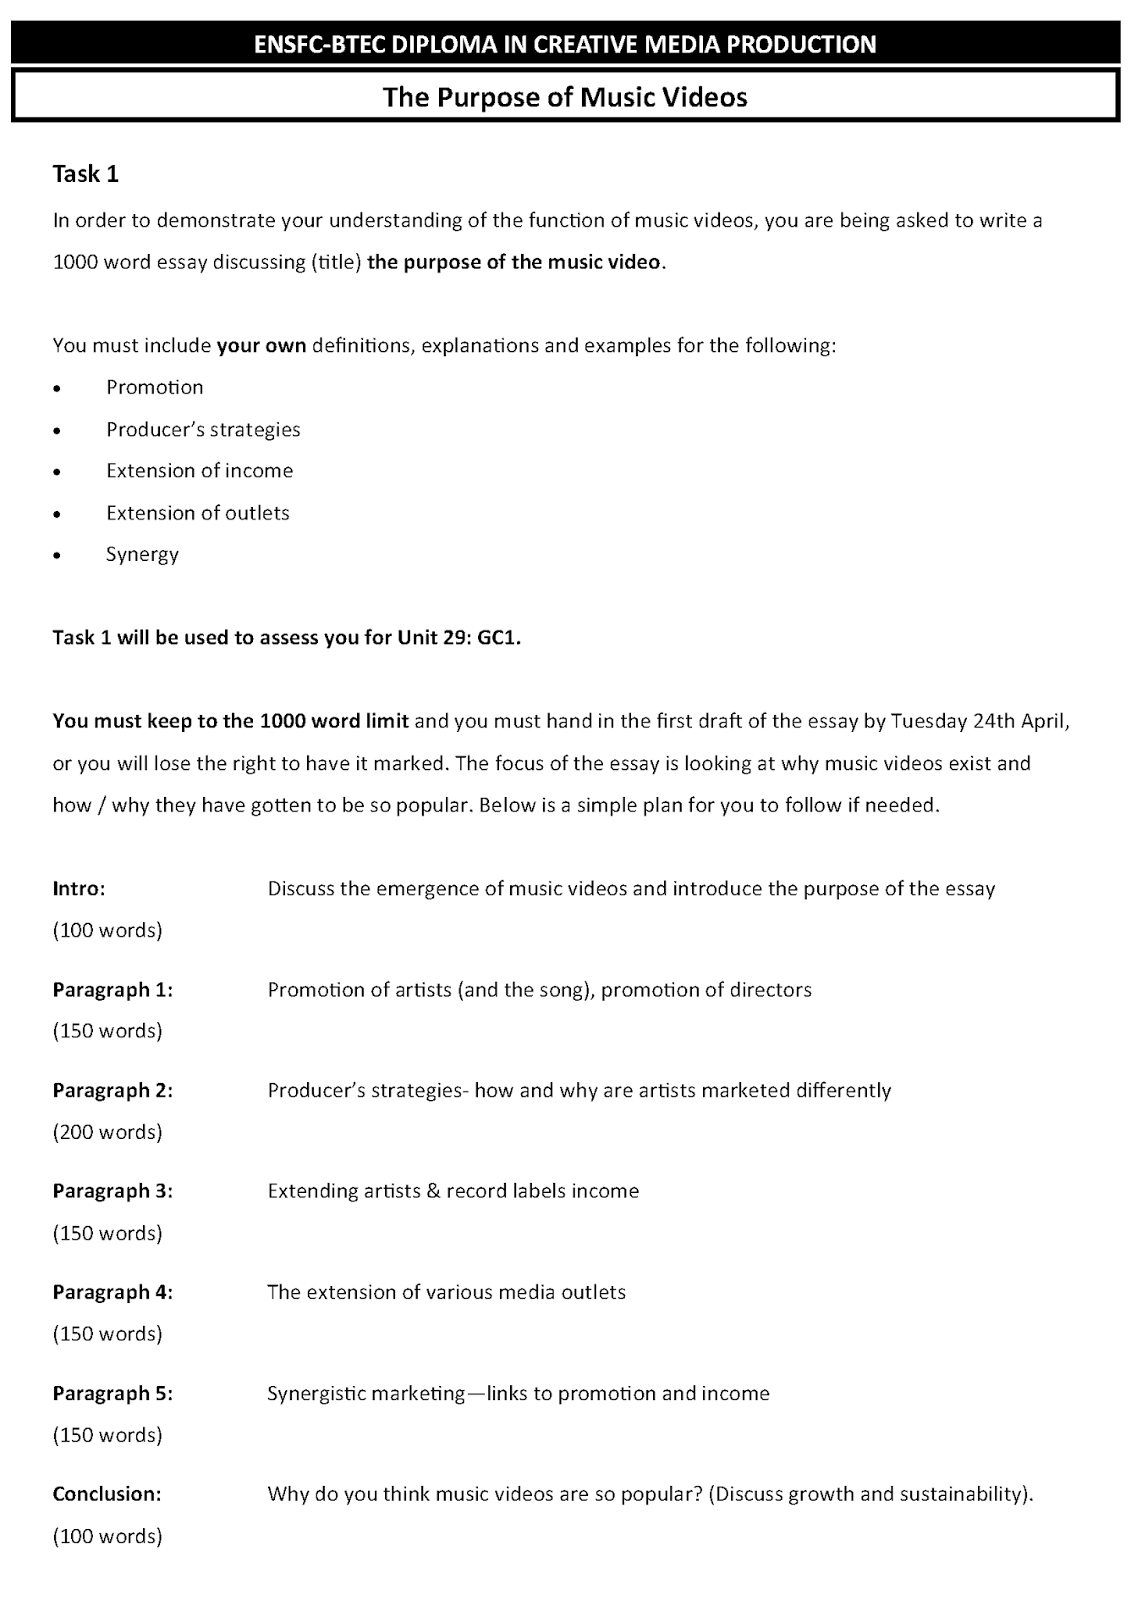 Essay On Animals Tuck Essays Word Limit Essay On Juvenile Delinquency also Water Pollution Causes And Effects Essay Tuck Essays Word Limit Homework Academic Service Zkhomeworkyvho  Lower The Drinking Age To 18 Essay